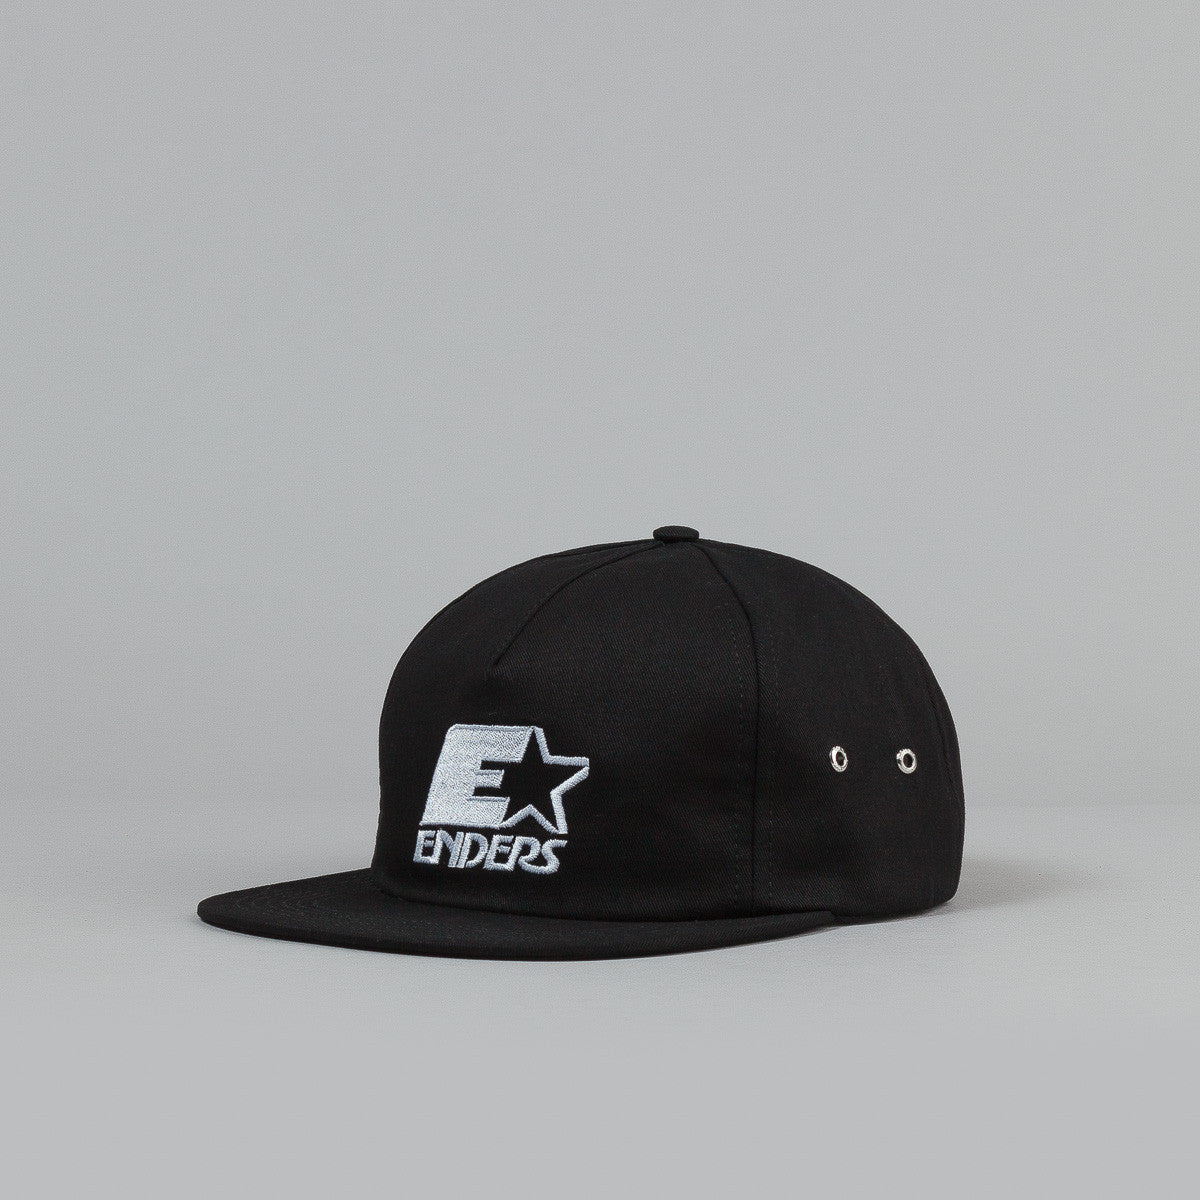 Rip N Dip Enders 5 Panel Cap - Black